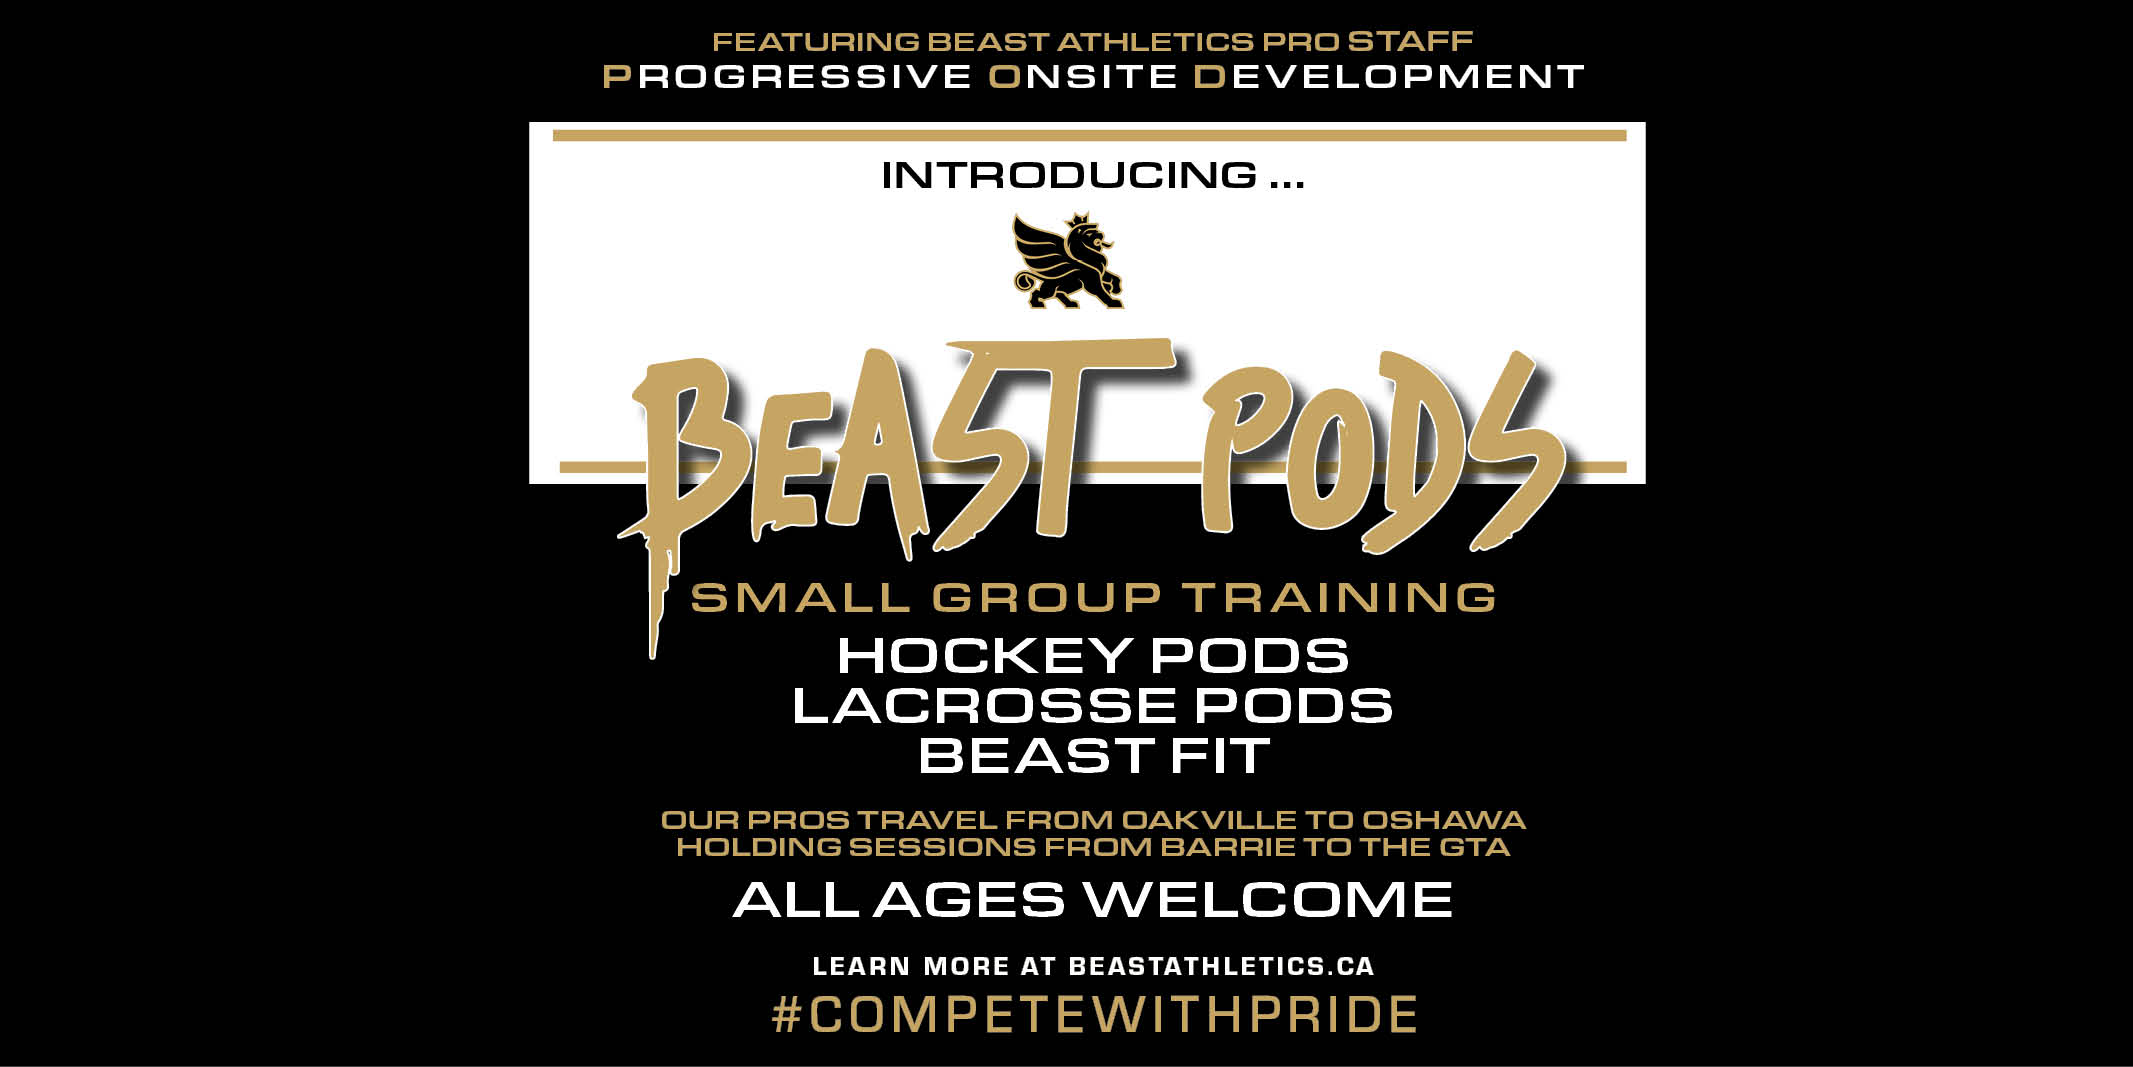 BEAST Progressive onsite development